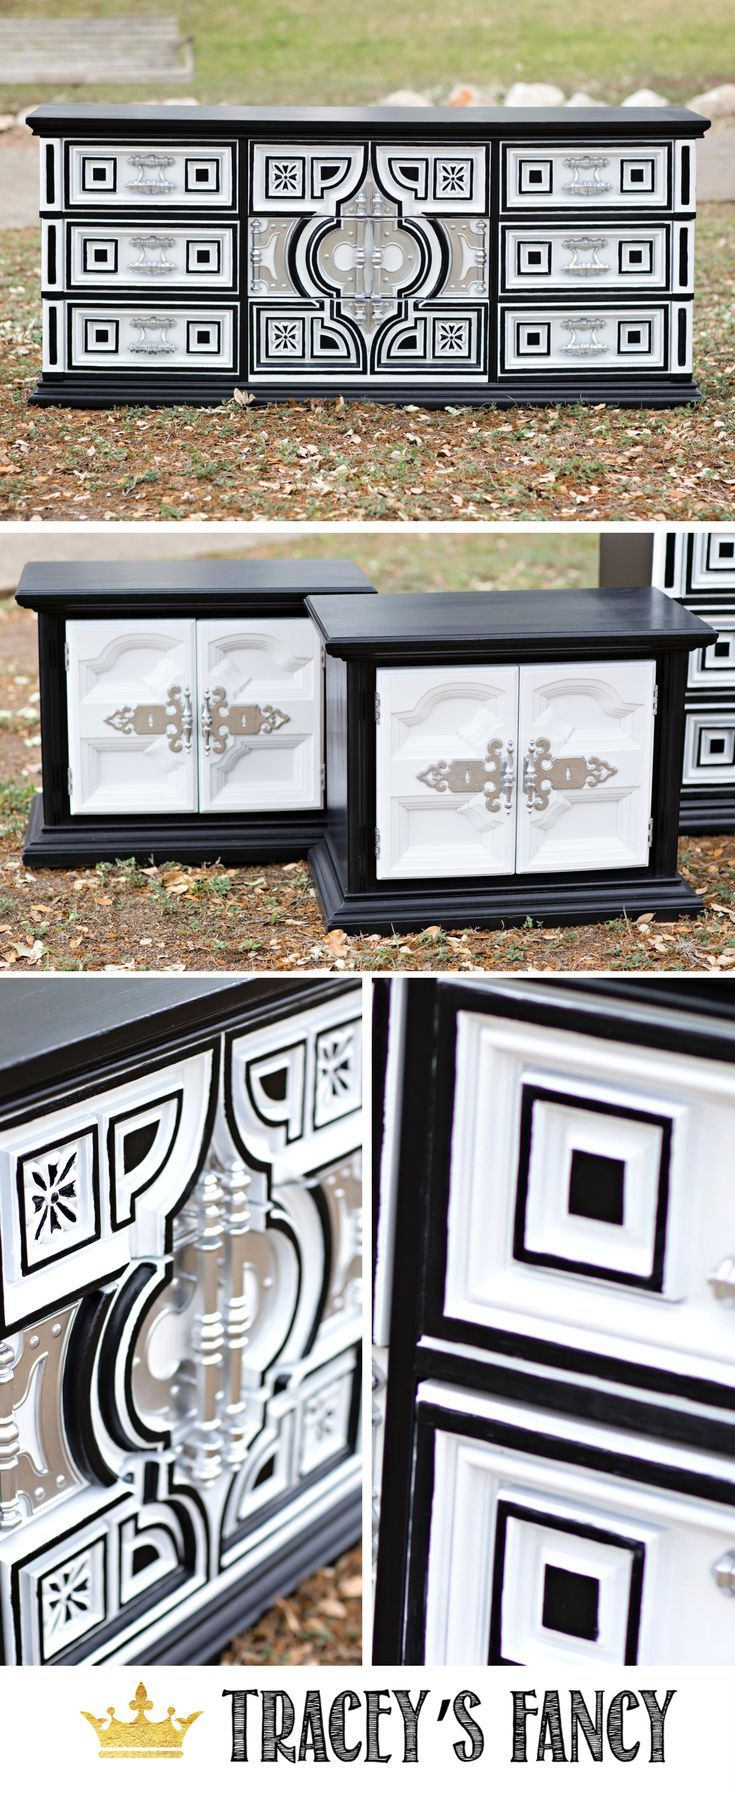 black white style modern bedroom silver. This Black And White Bedroom Set Is Hollywood Regency With Silver Handles By Tracey\u0027s Fancy. Here\u0027s A Furniture Makeover From Dark 70s Spanish Influence To Style Modern